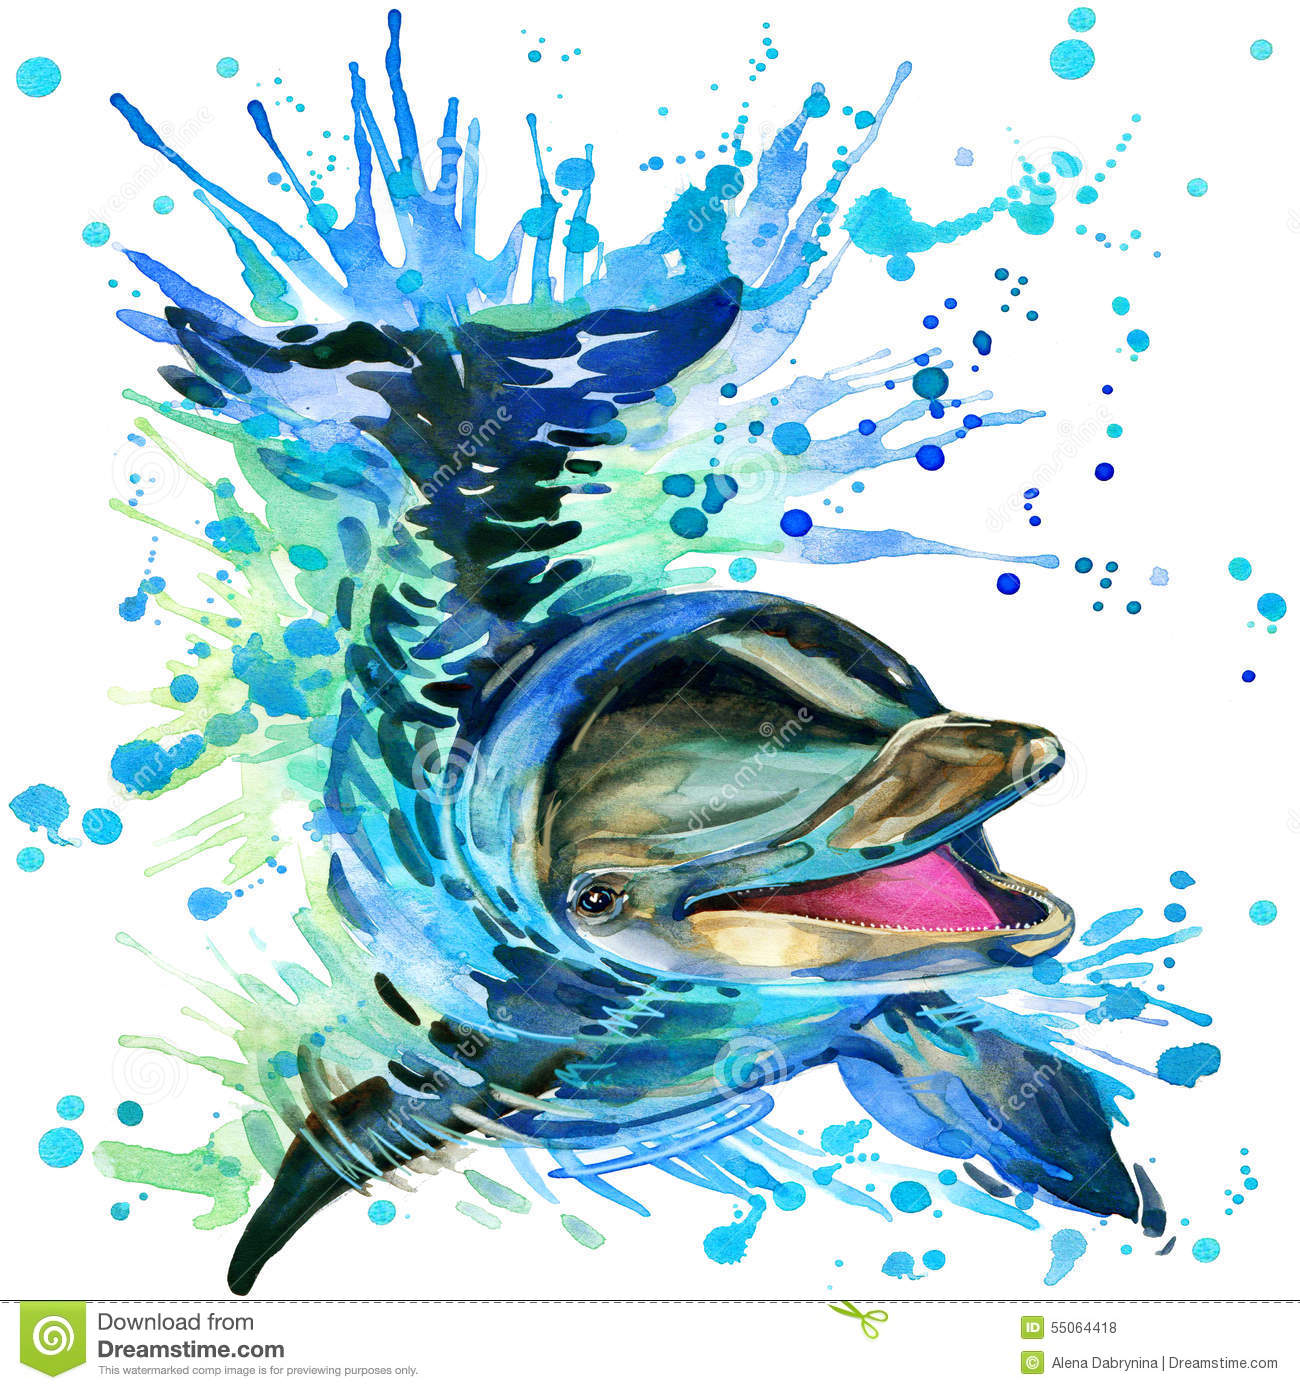 Dolphin Illustration With Splash Watercolor Textured Background.